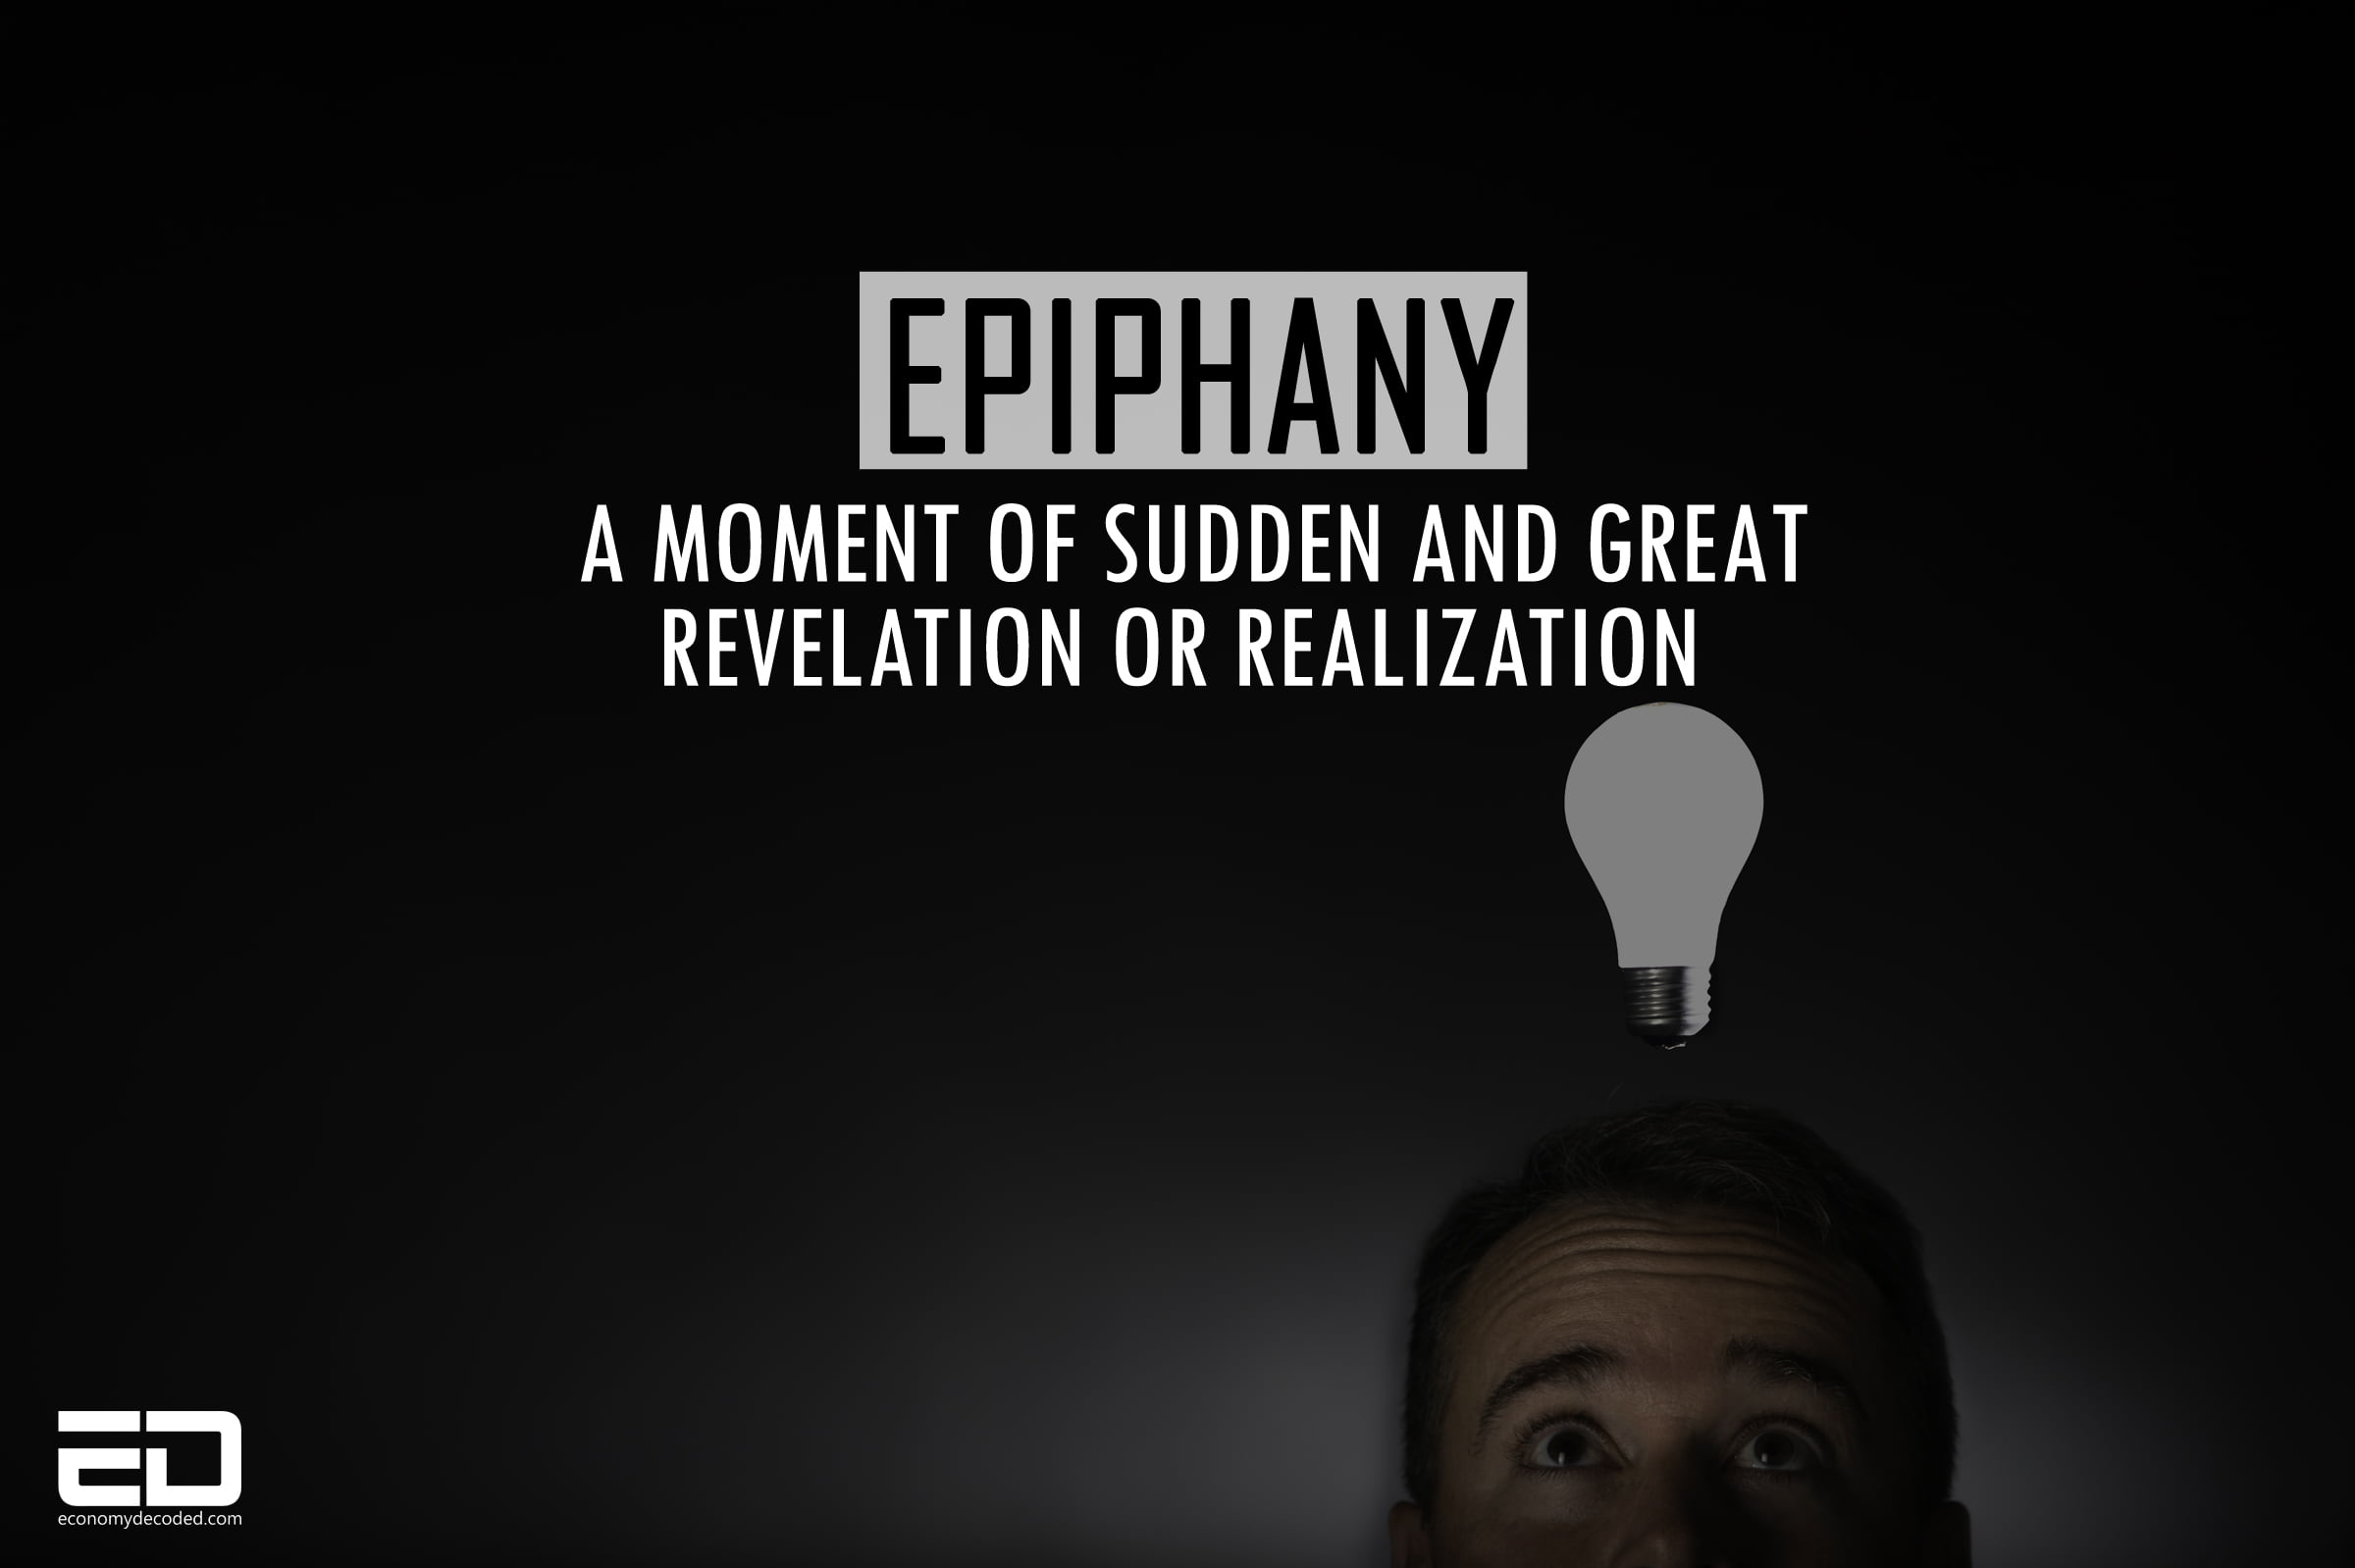 a moment of epiphany essay Definition of epiphany when used as a literary device, an epiphany is a moment in which there is a sudden realization that leads to a new perspective that clarifies a problem or situation a character may have an epiphany, or it may also occur in the narration such that the reader has the epiphany.